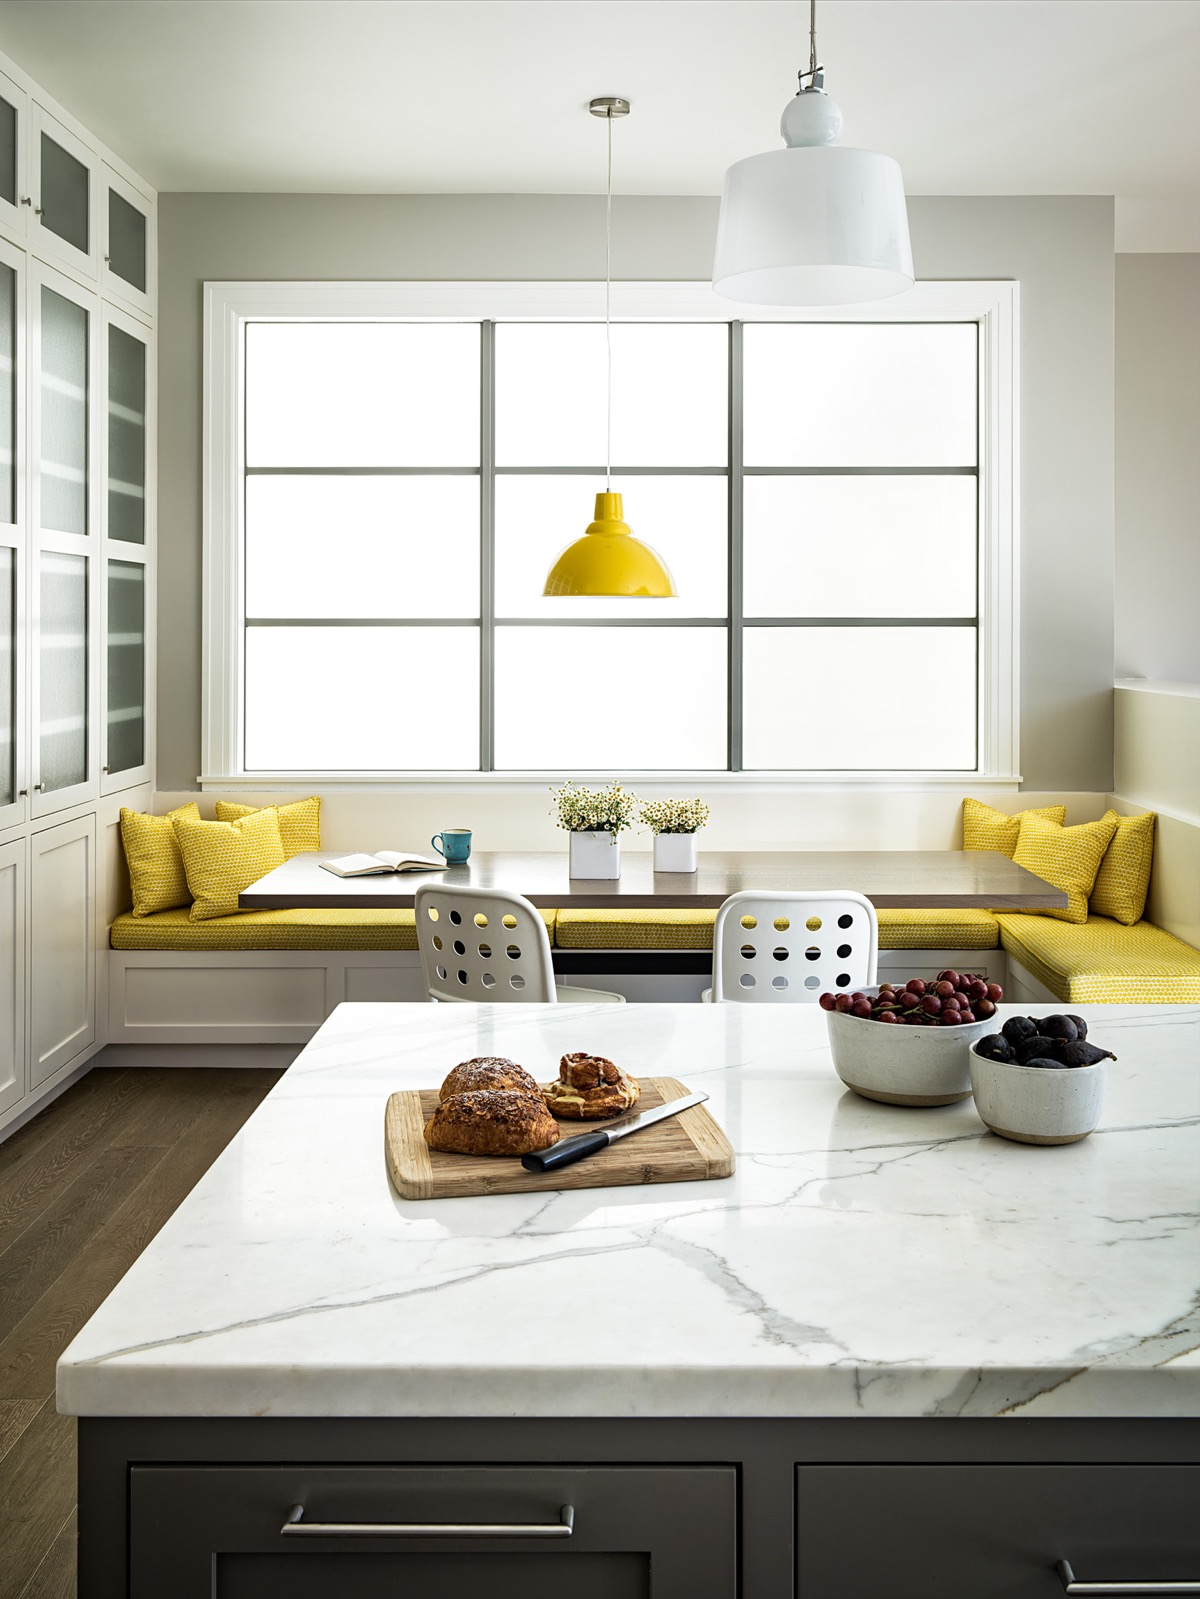 Clean breakfast nook Most-Wanted Breakfast Nook Ideas That Add Charm To Your Kitchen